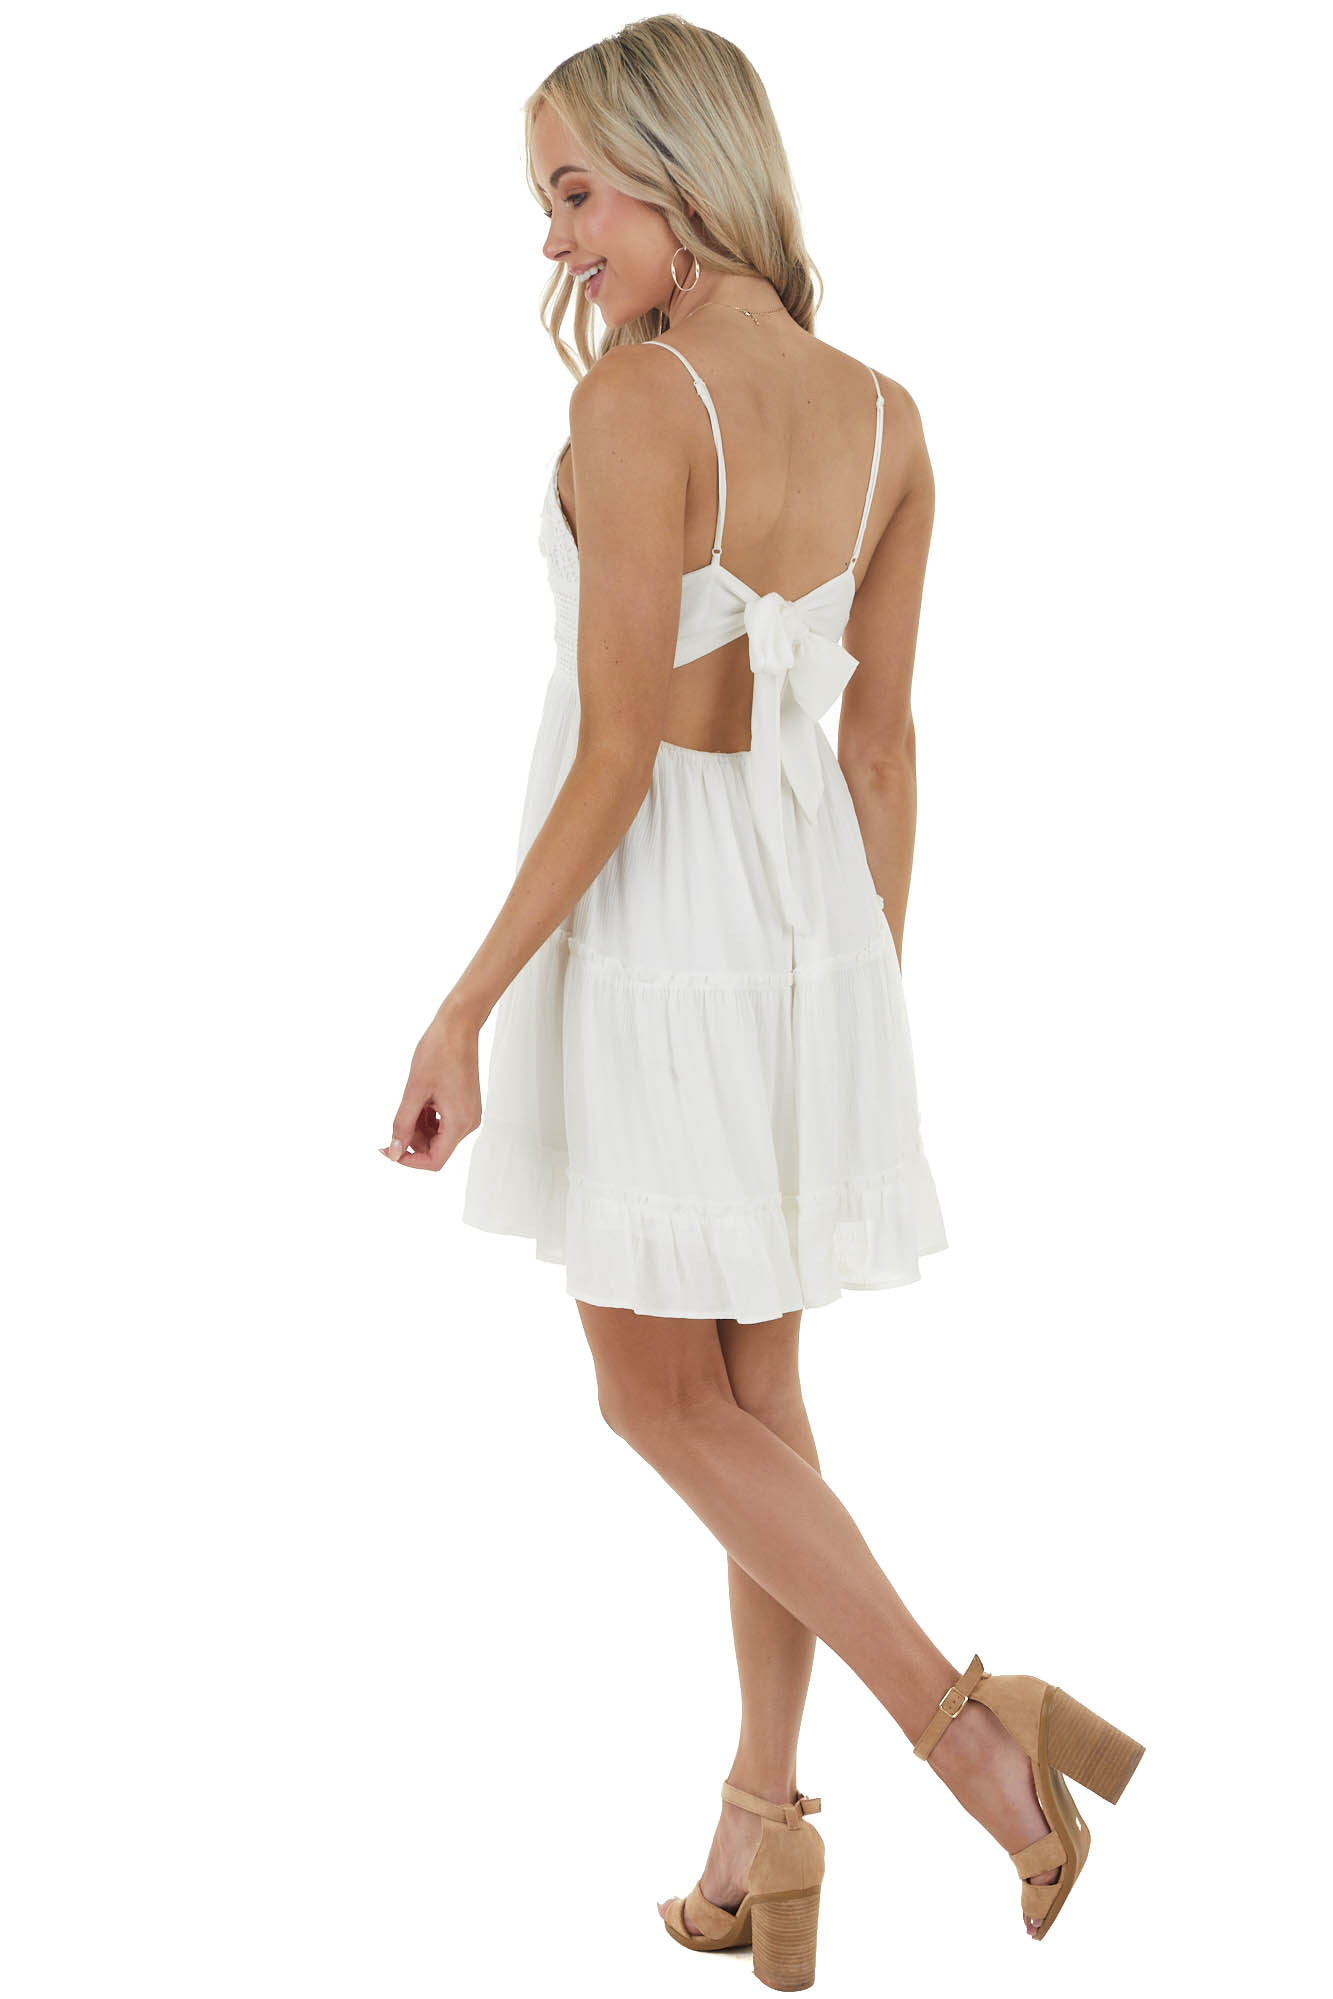 Pearl White Sleeveless Short Dress with Crochet Lace Detail